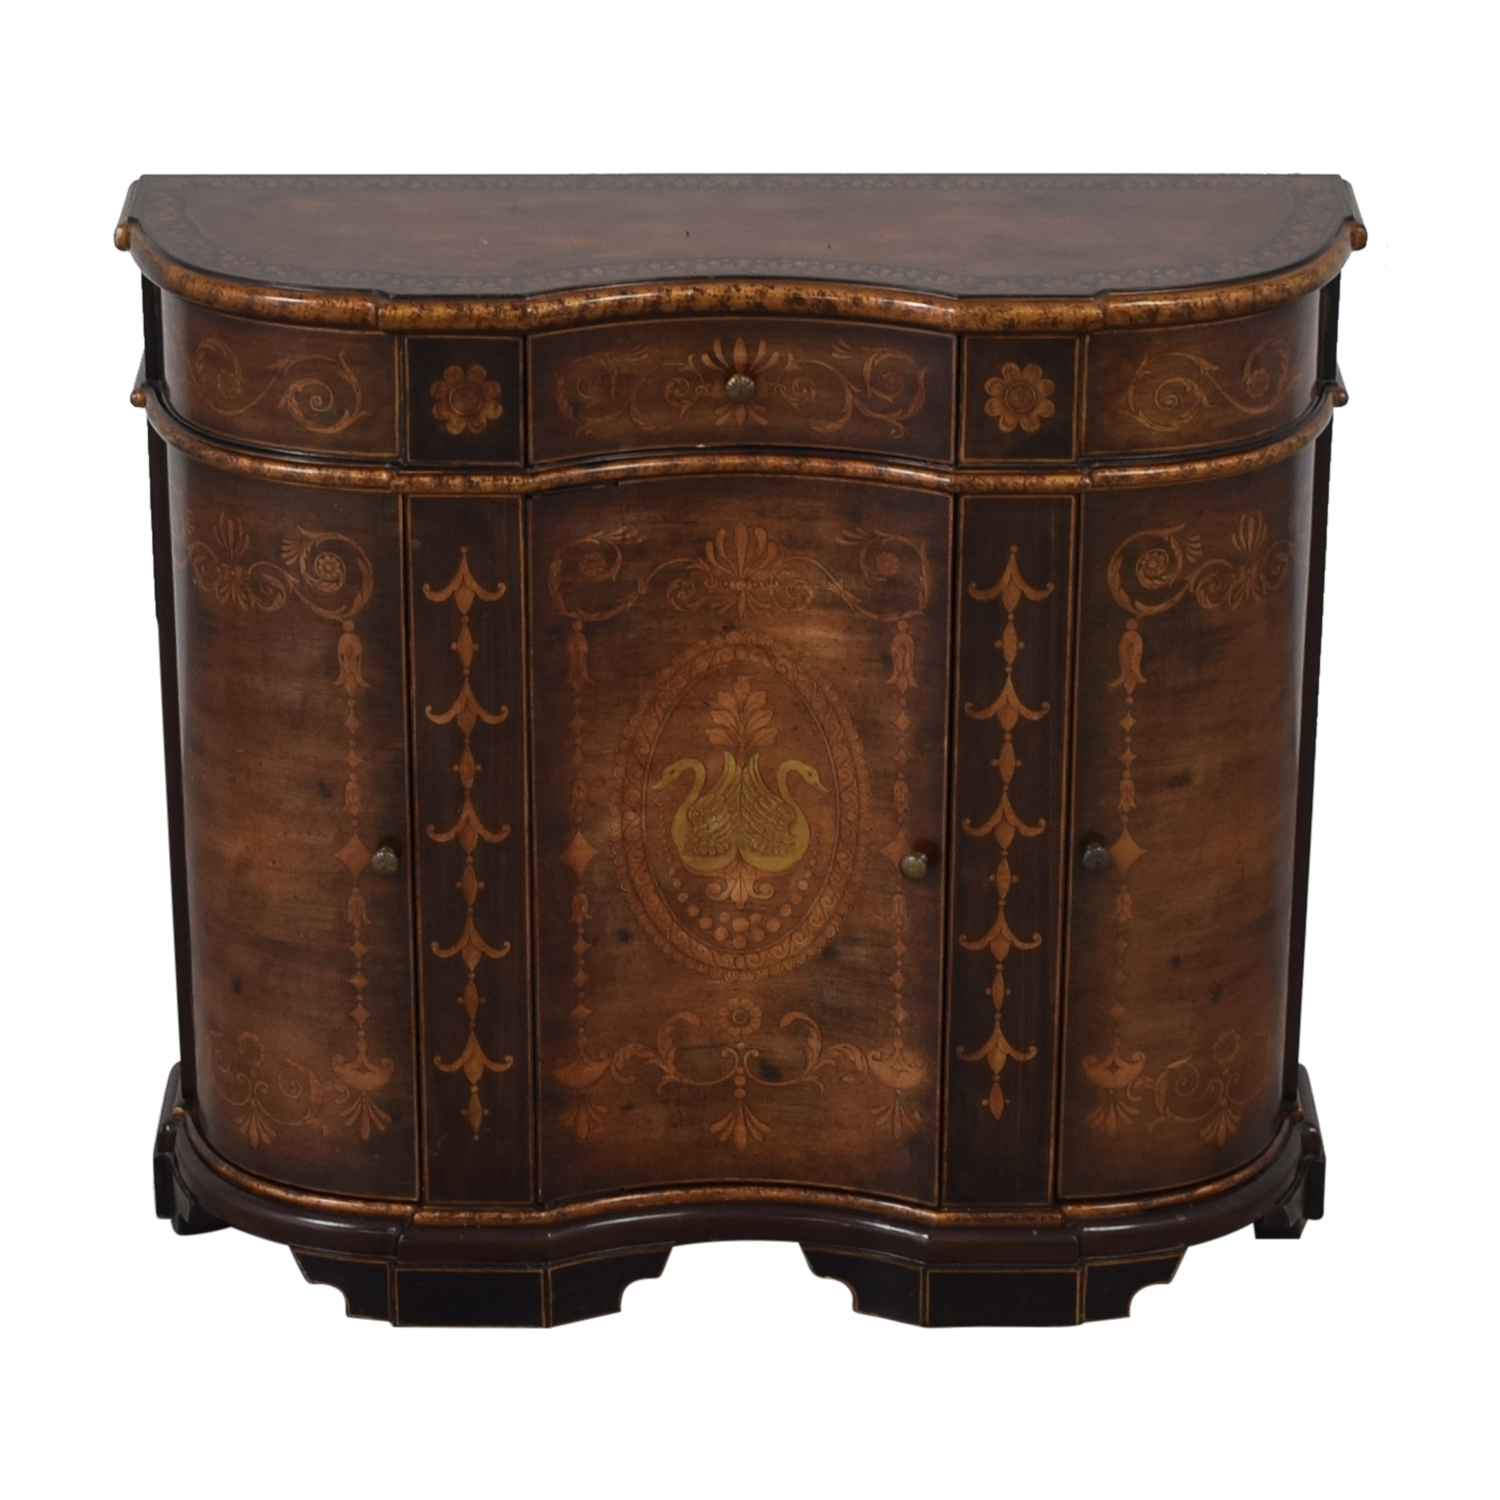 Cabinet with Curved Doors dimensions